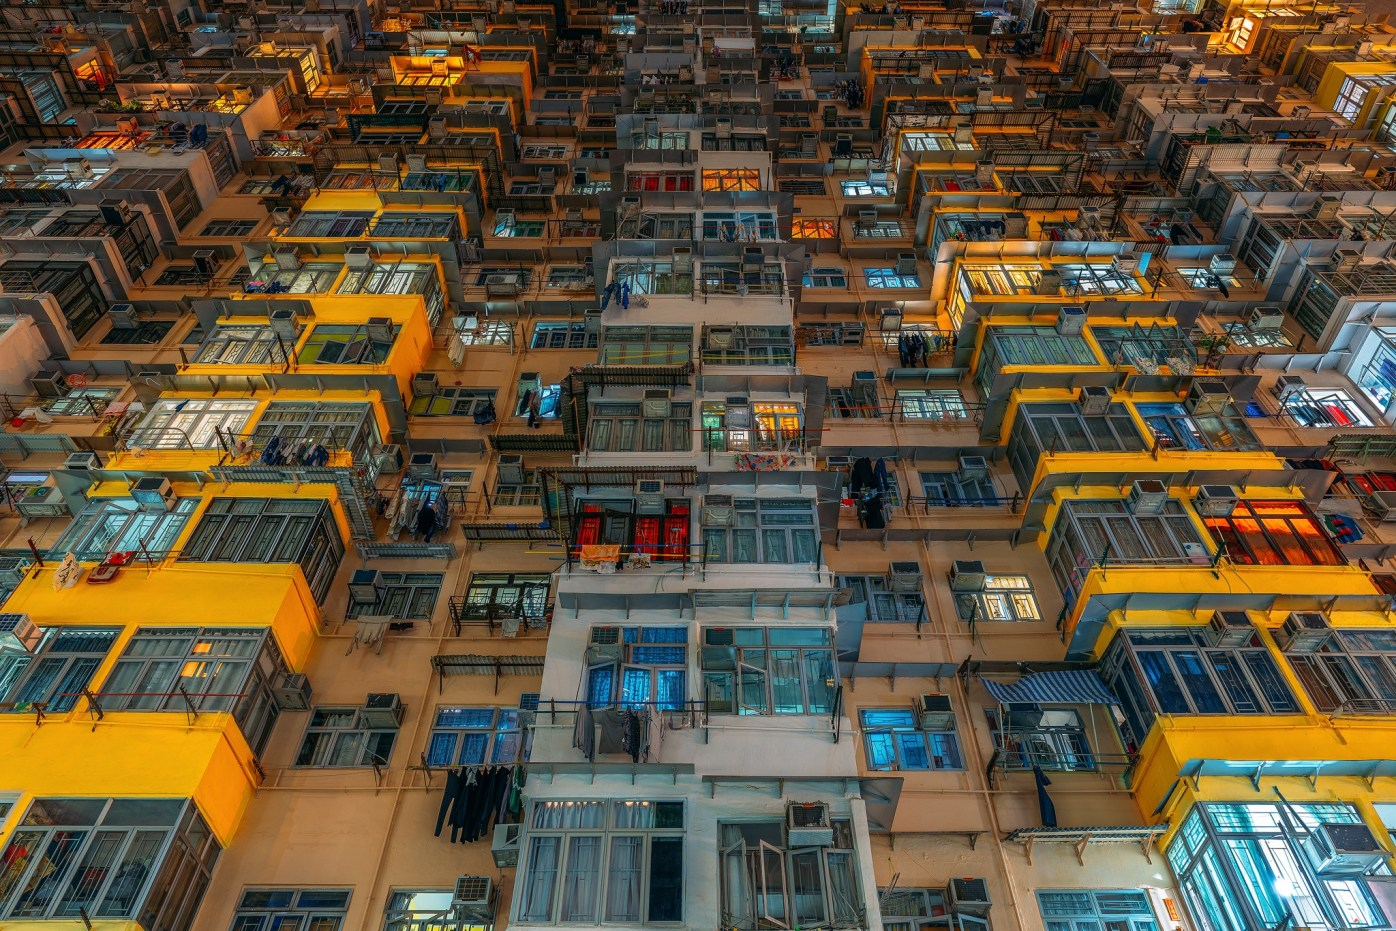 Little Boxes - The iconic Montane Mansions in Quarry Bay, Hong Kong